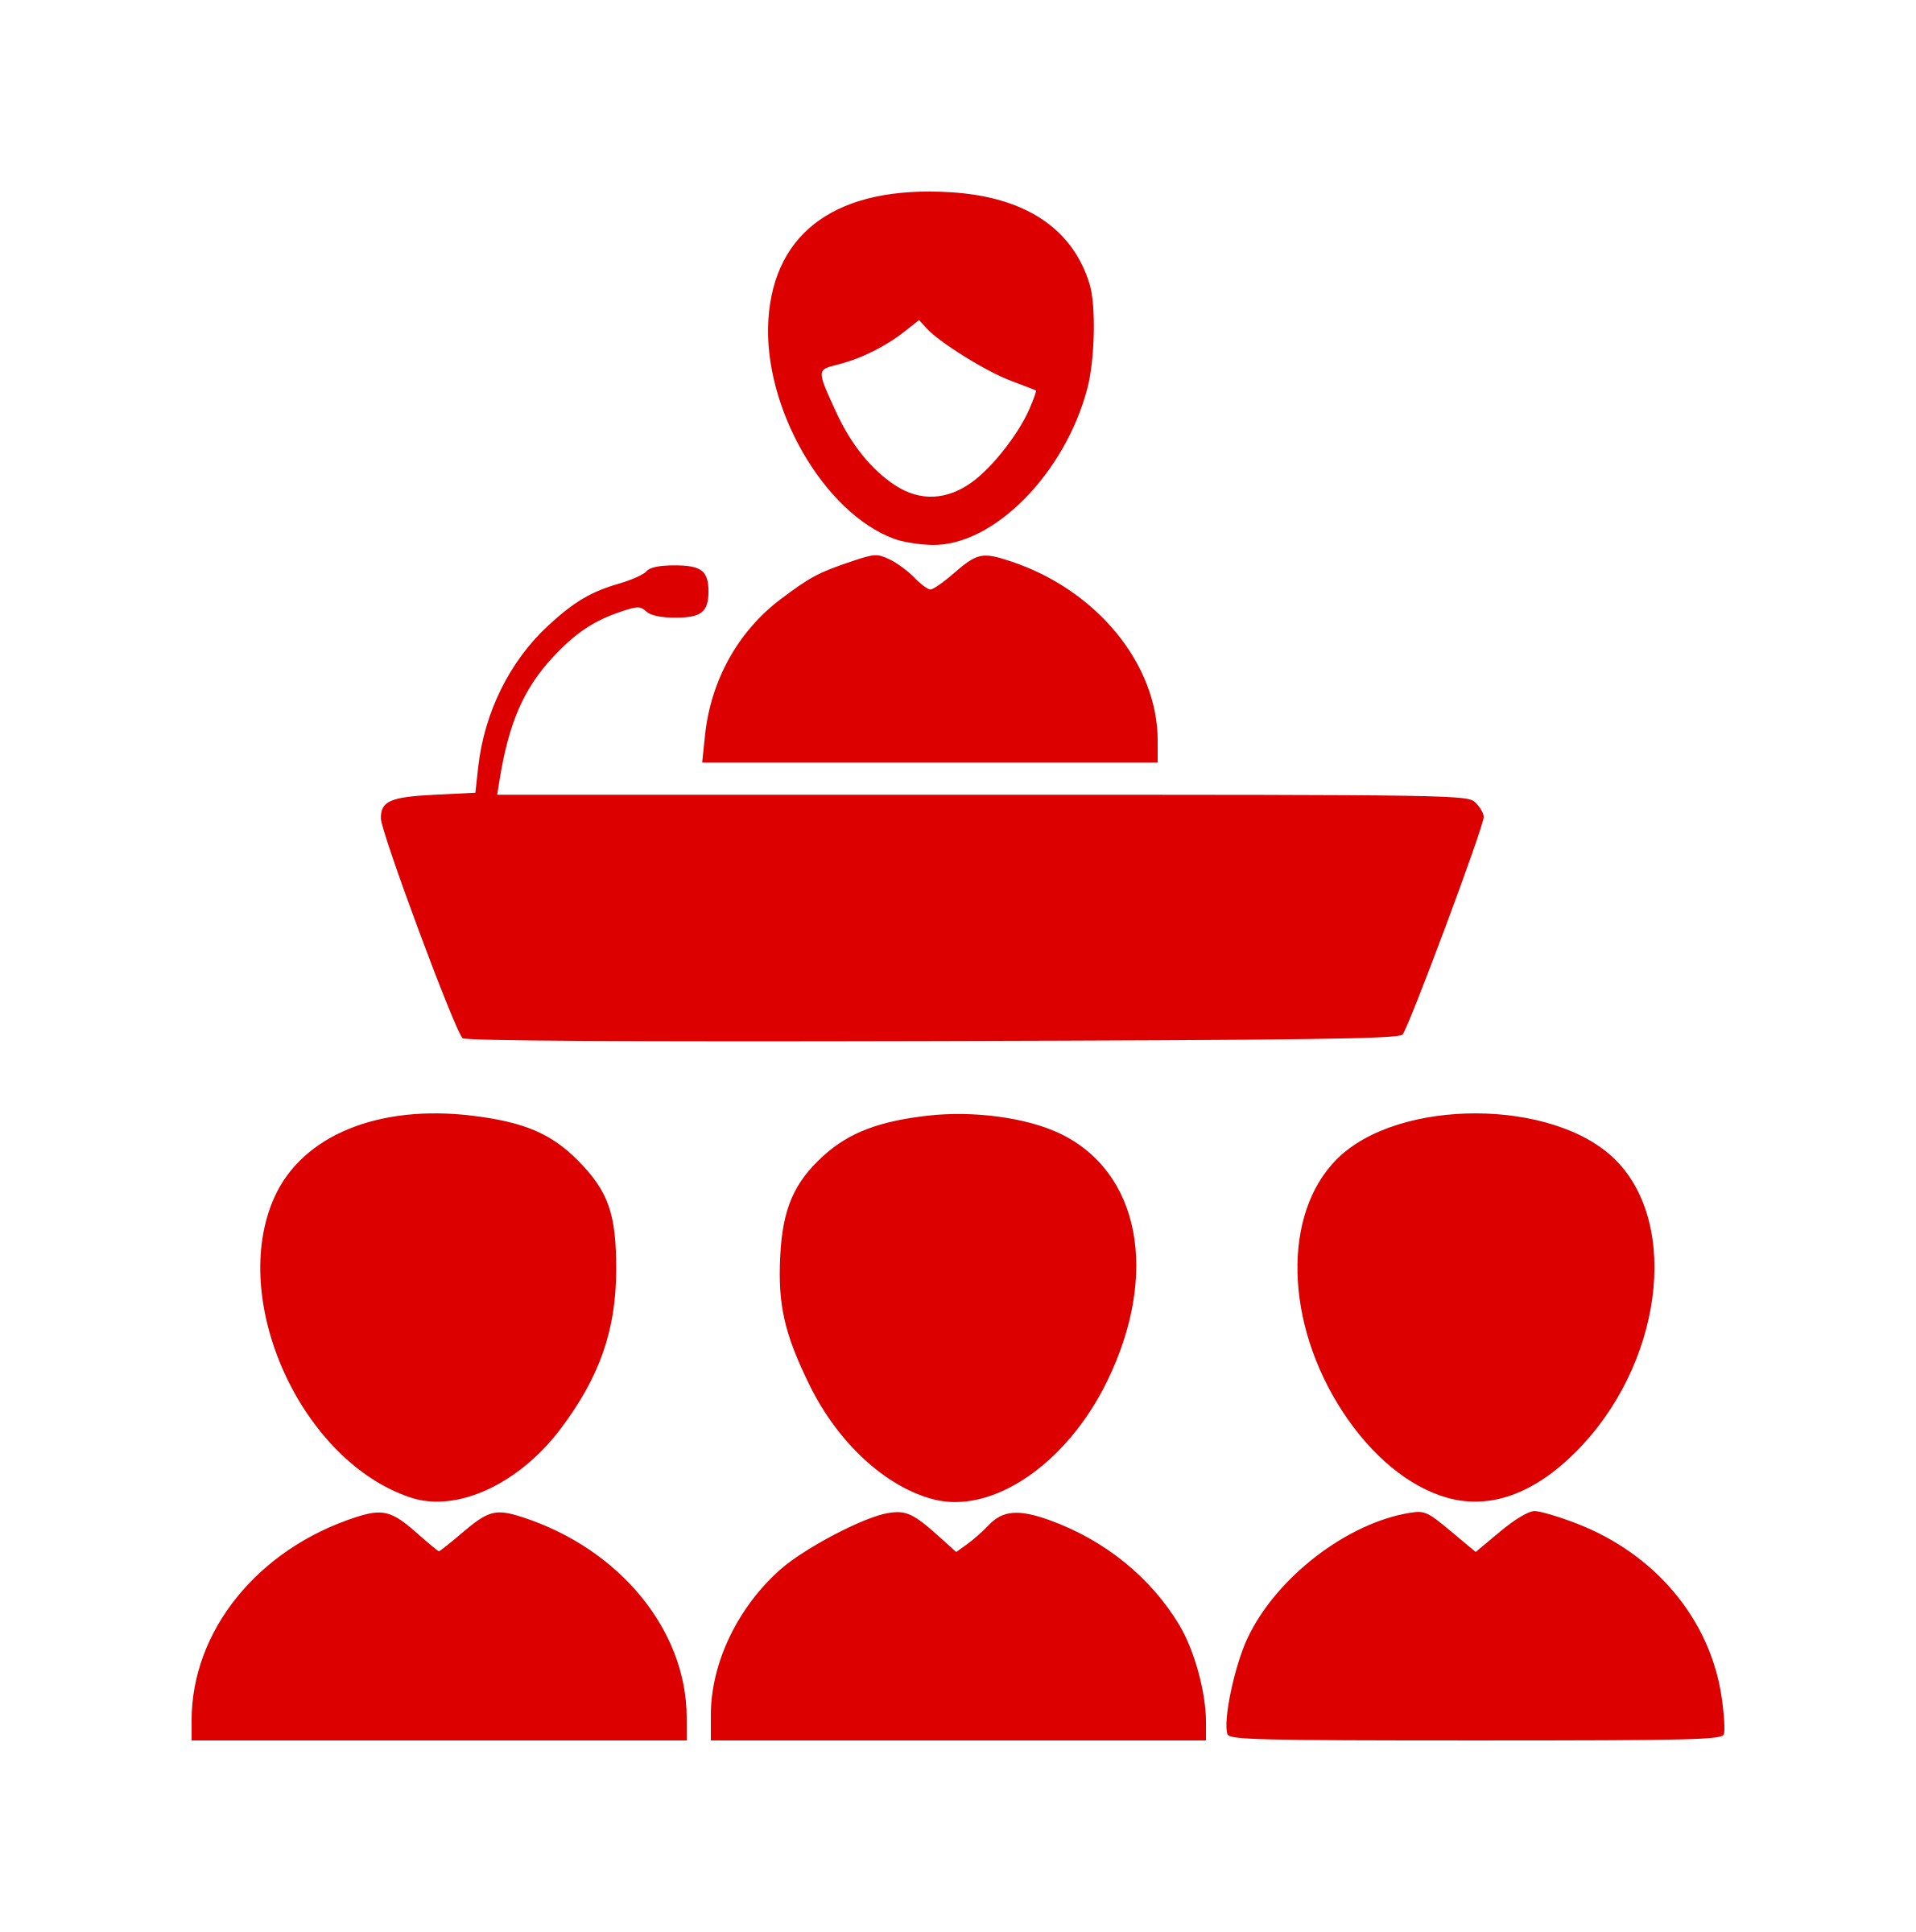 conference clipart icon